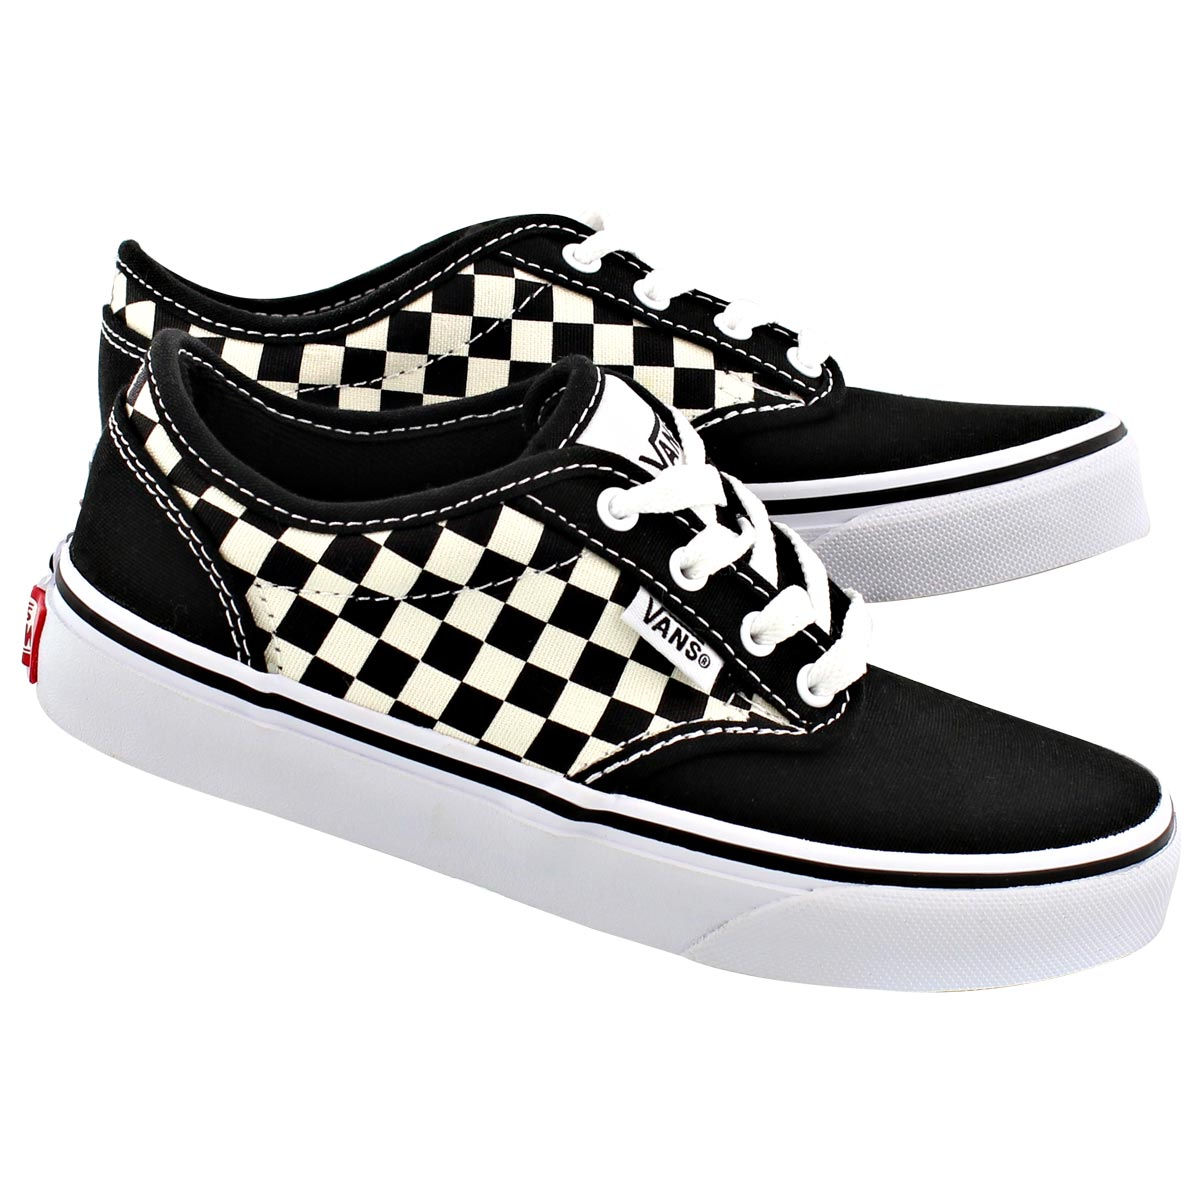 Bys Atwood blk checkered lace up sneaker